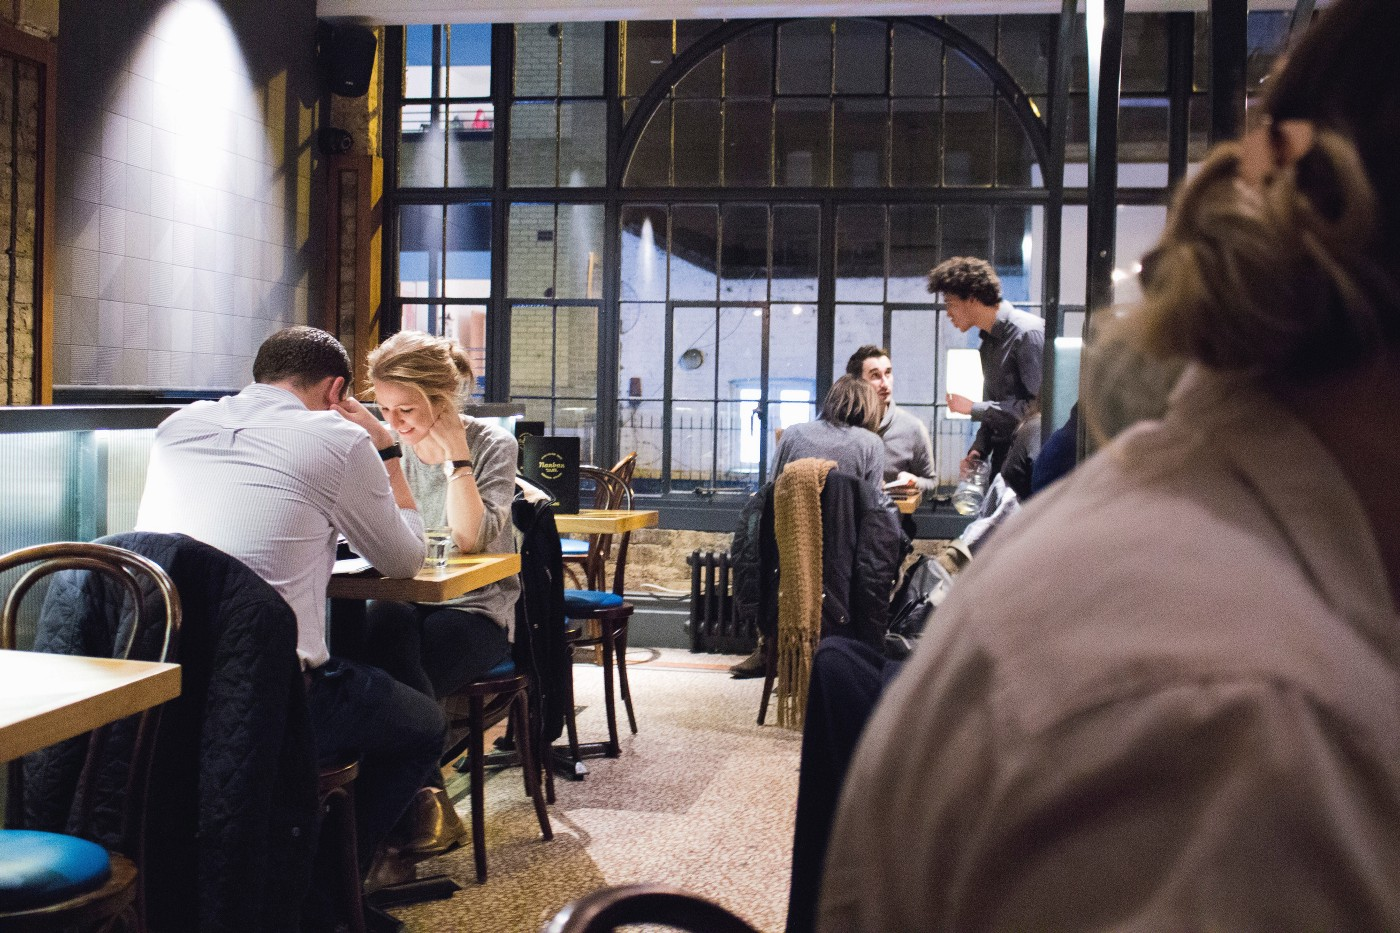 Diners and servers at tables in a busy restaurant or bar